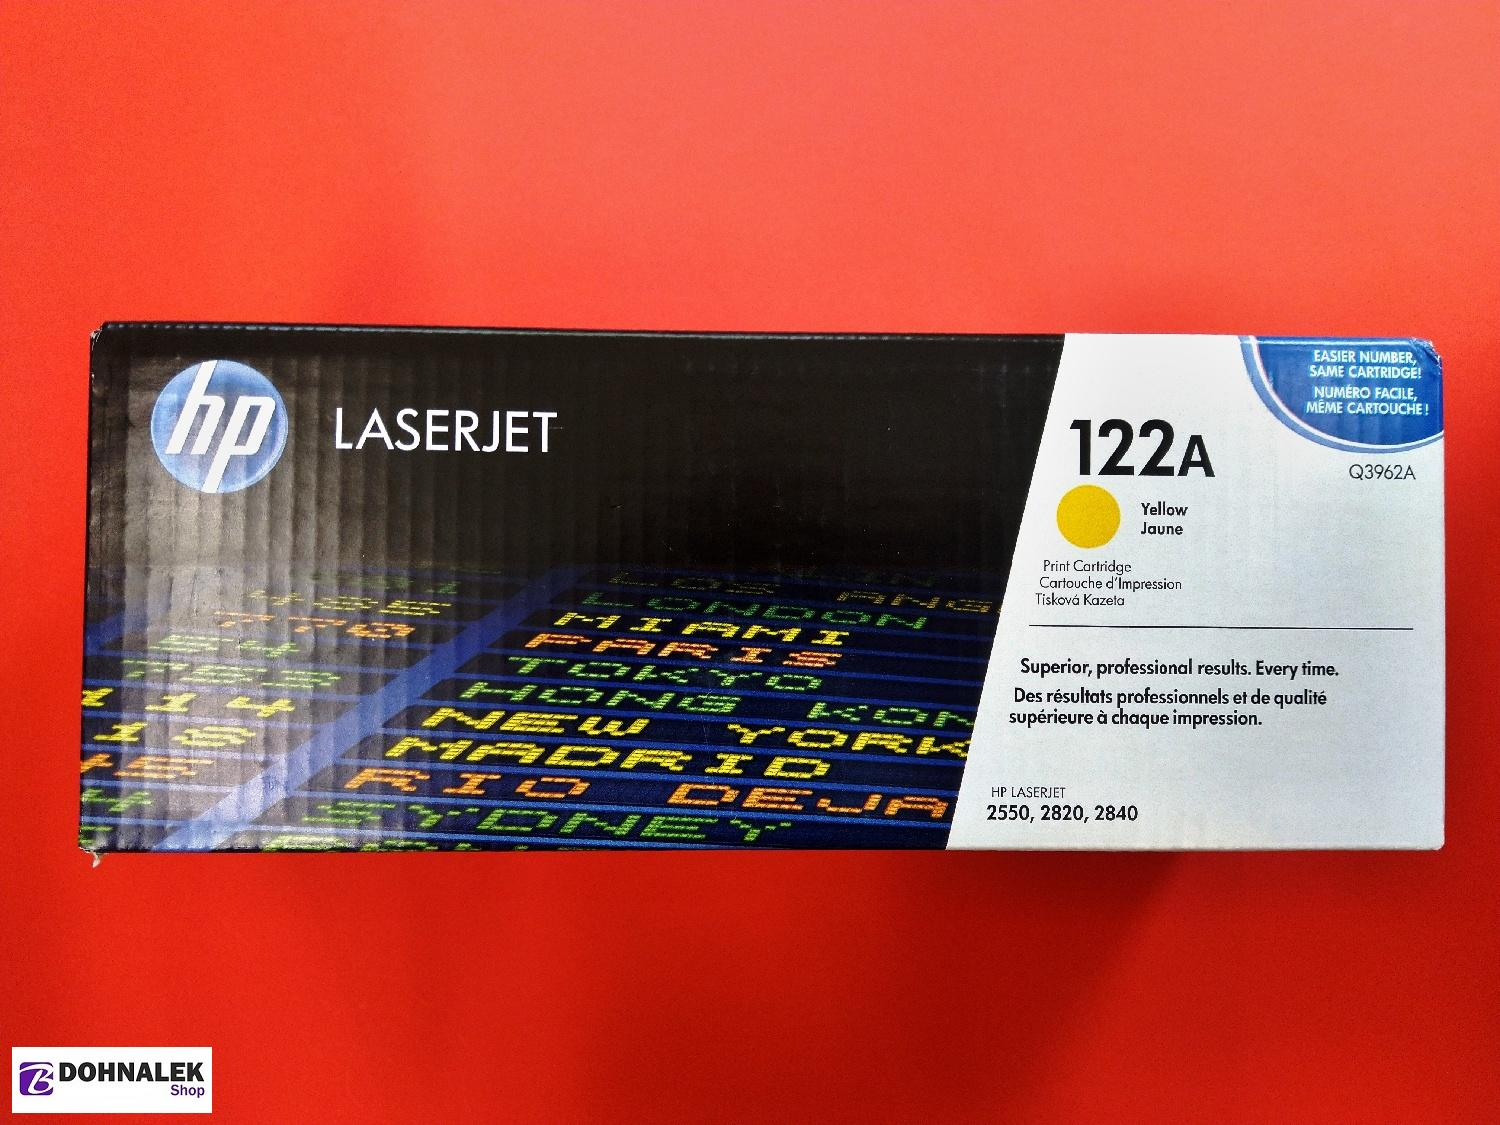 HP Q3962A Toner 122A pro CLJ 2550 (4000str), Yellow